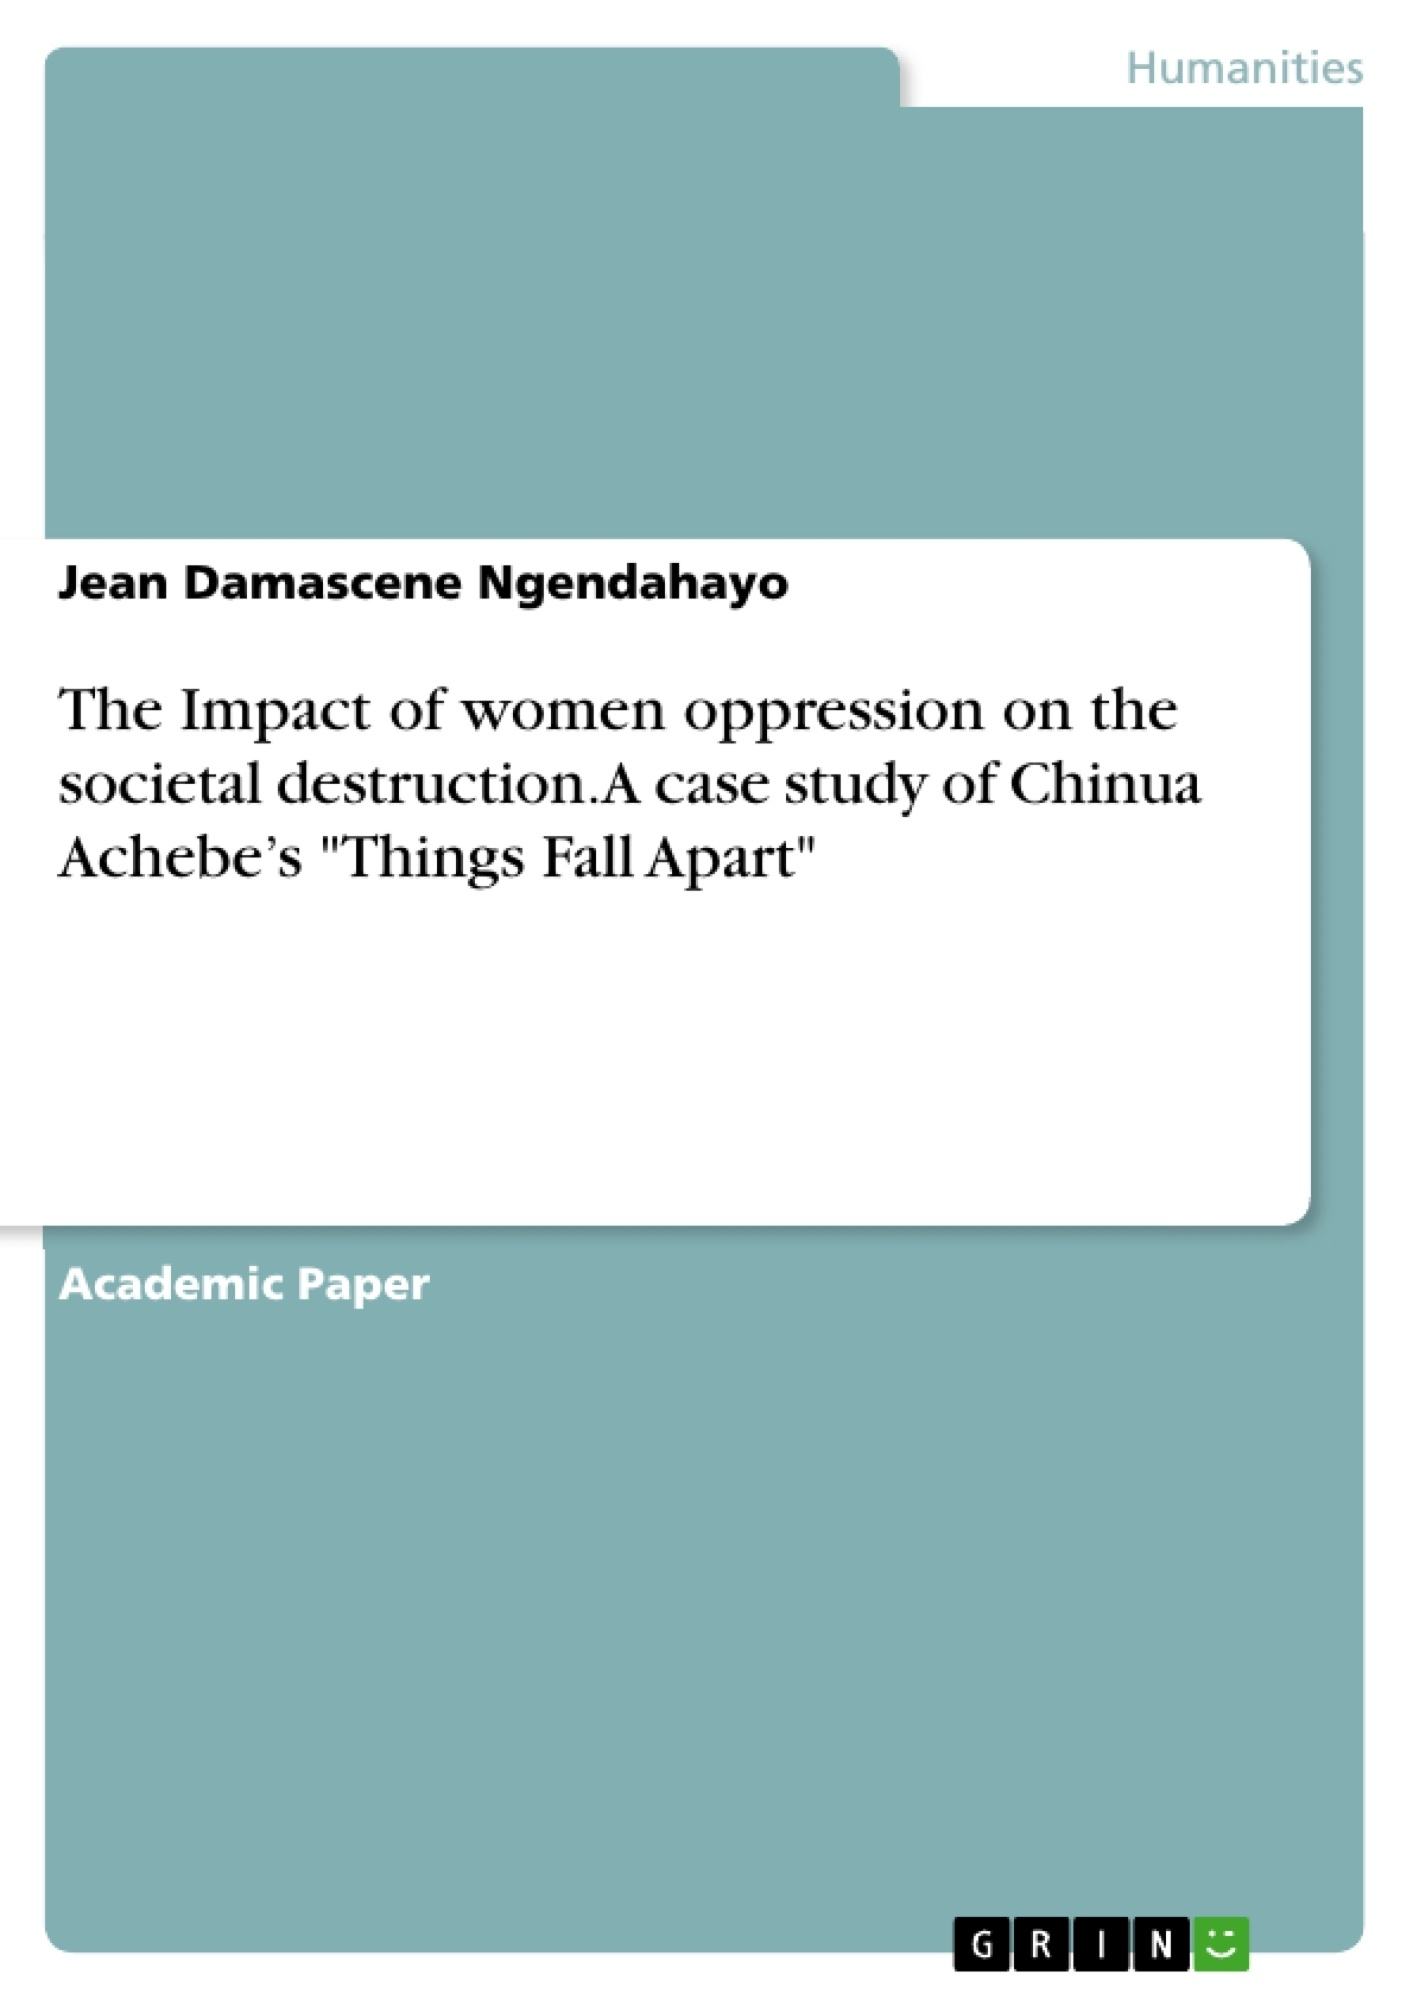 """Title: The Impact of women oppression on the societal destruction. A case study of Chinua Achebe's """"Things Fall Apart"""""""